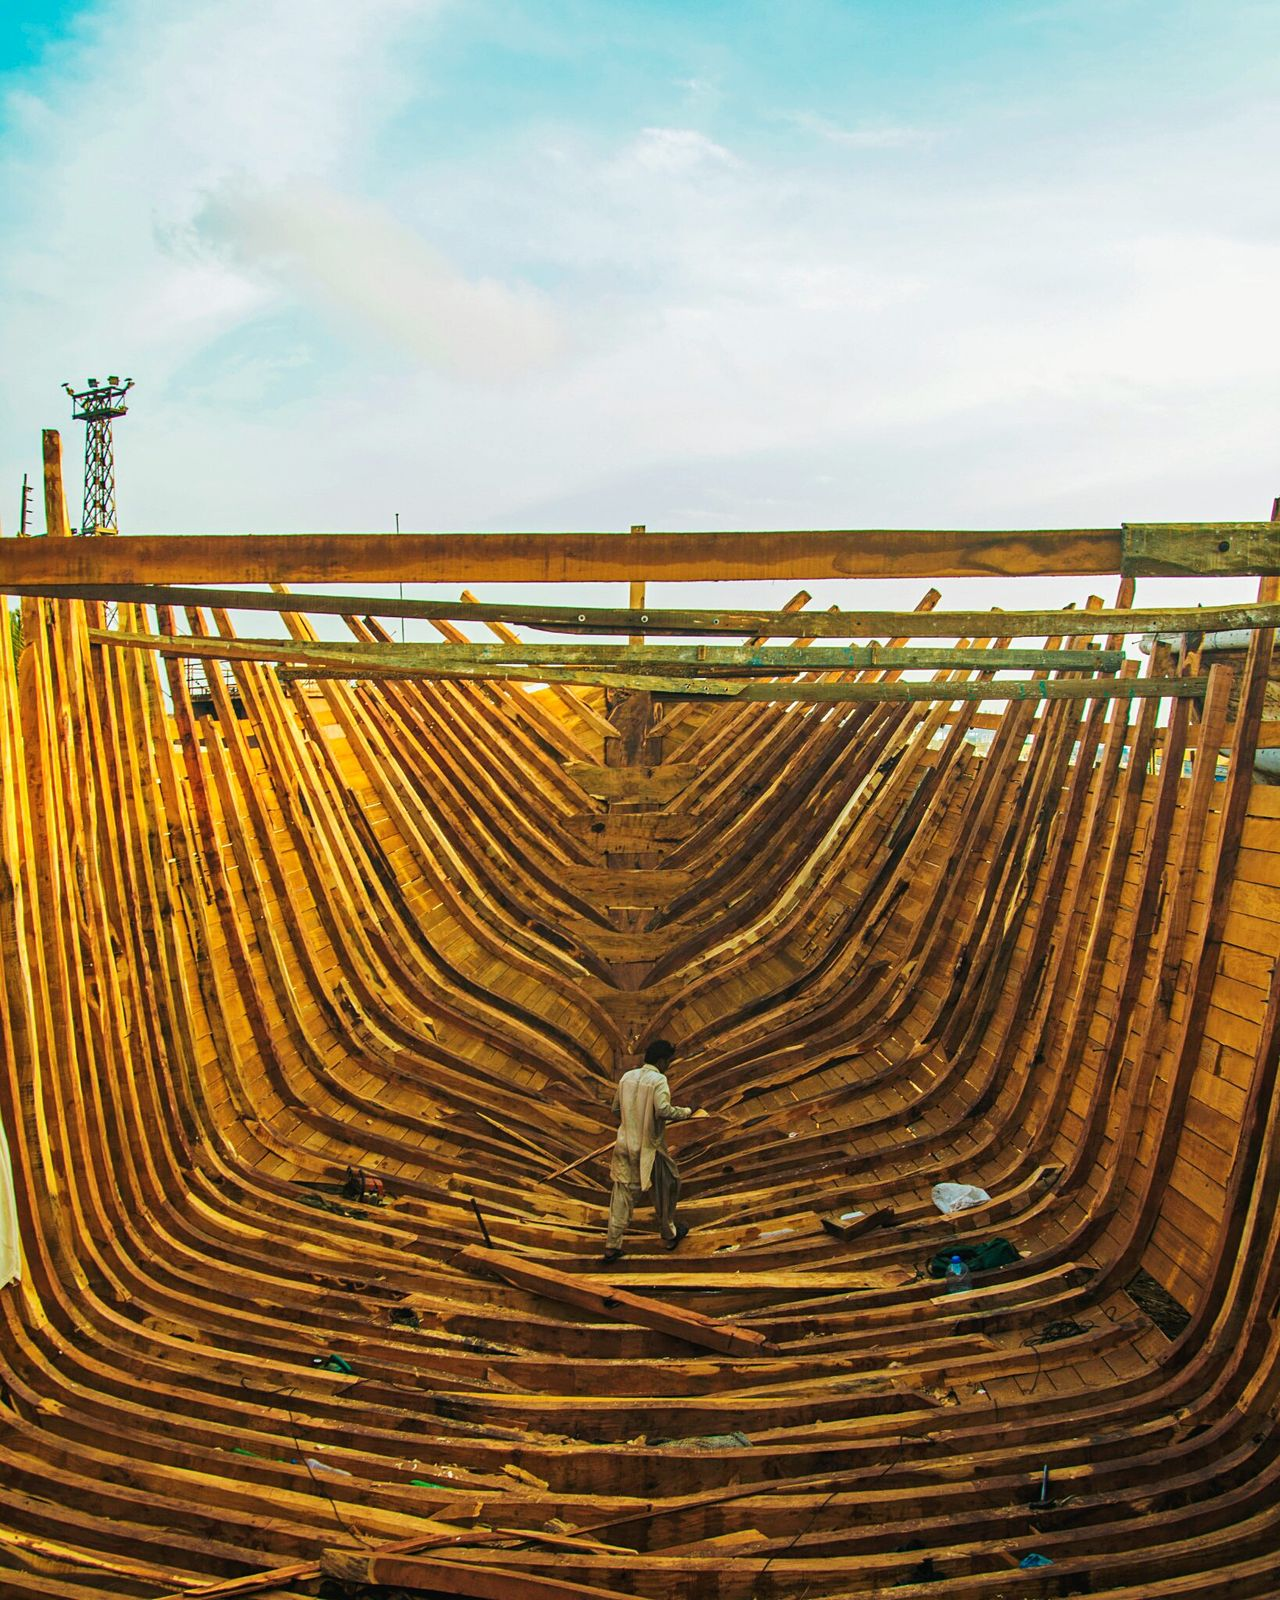 Sky Outdoors Agriculture Sand Landscape Beauty In Nature No People Day Nature Karachi Making Ship EyeEmNewHere